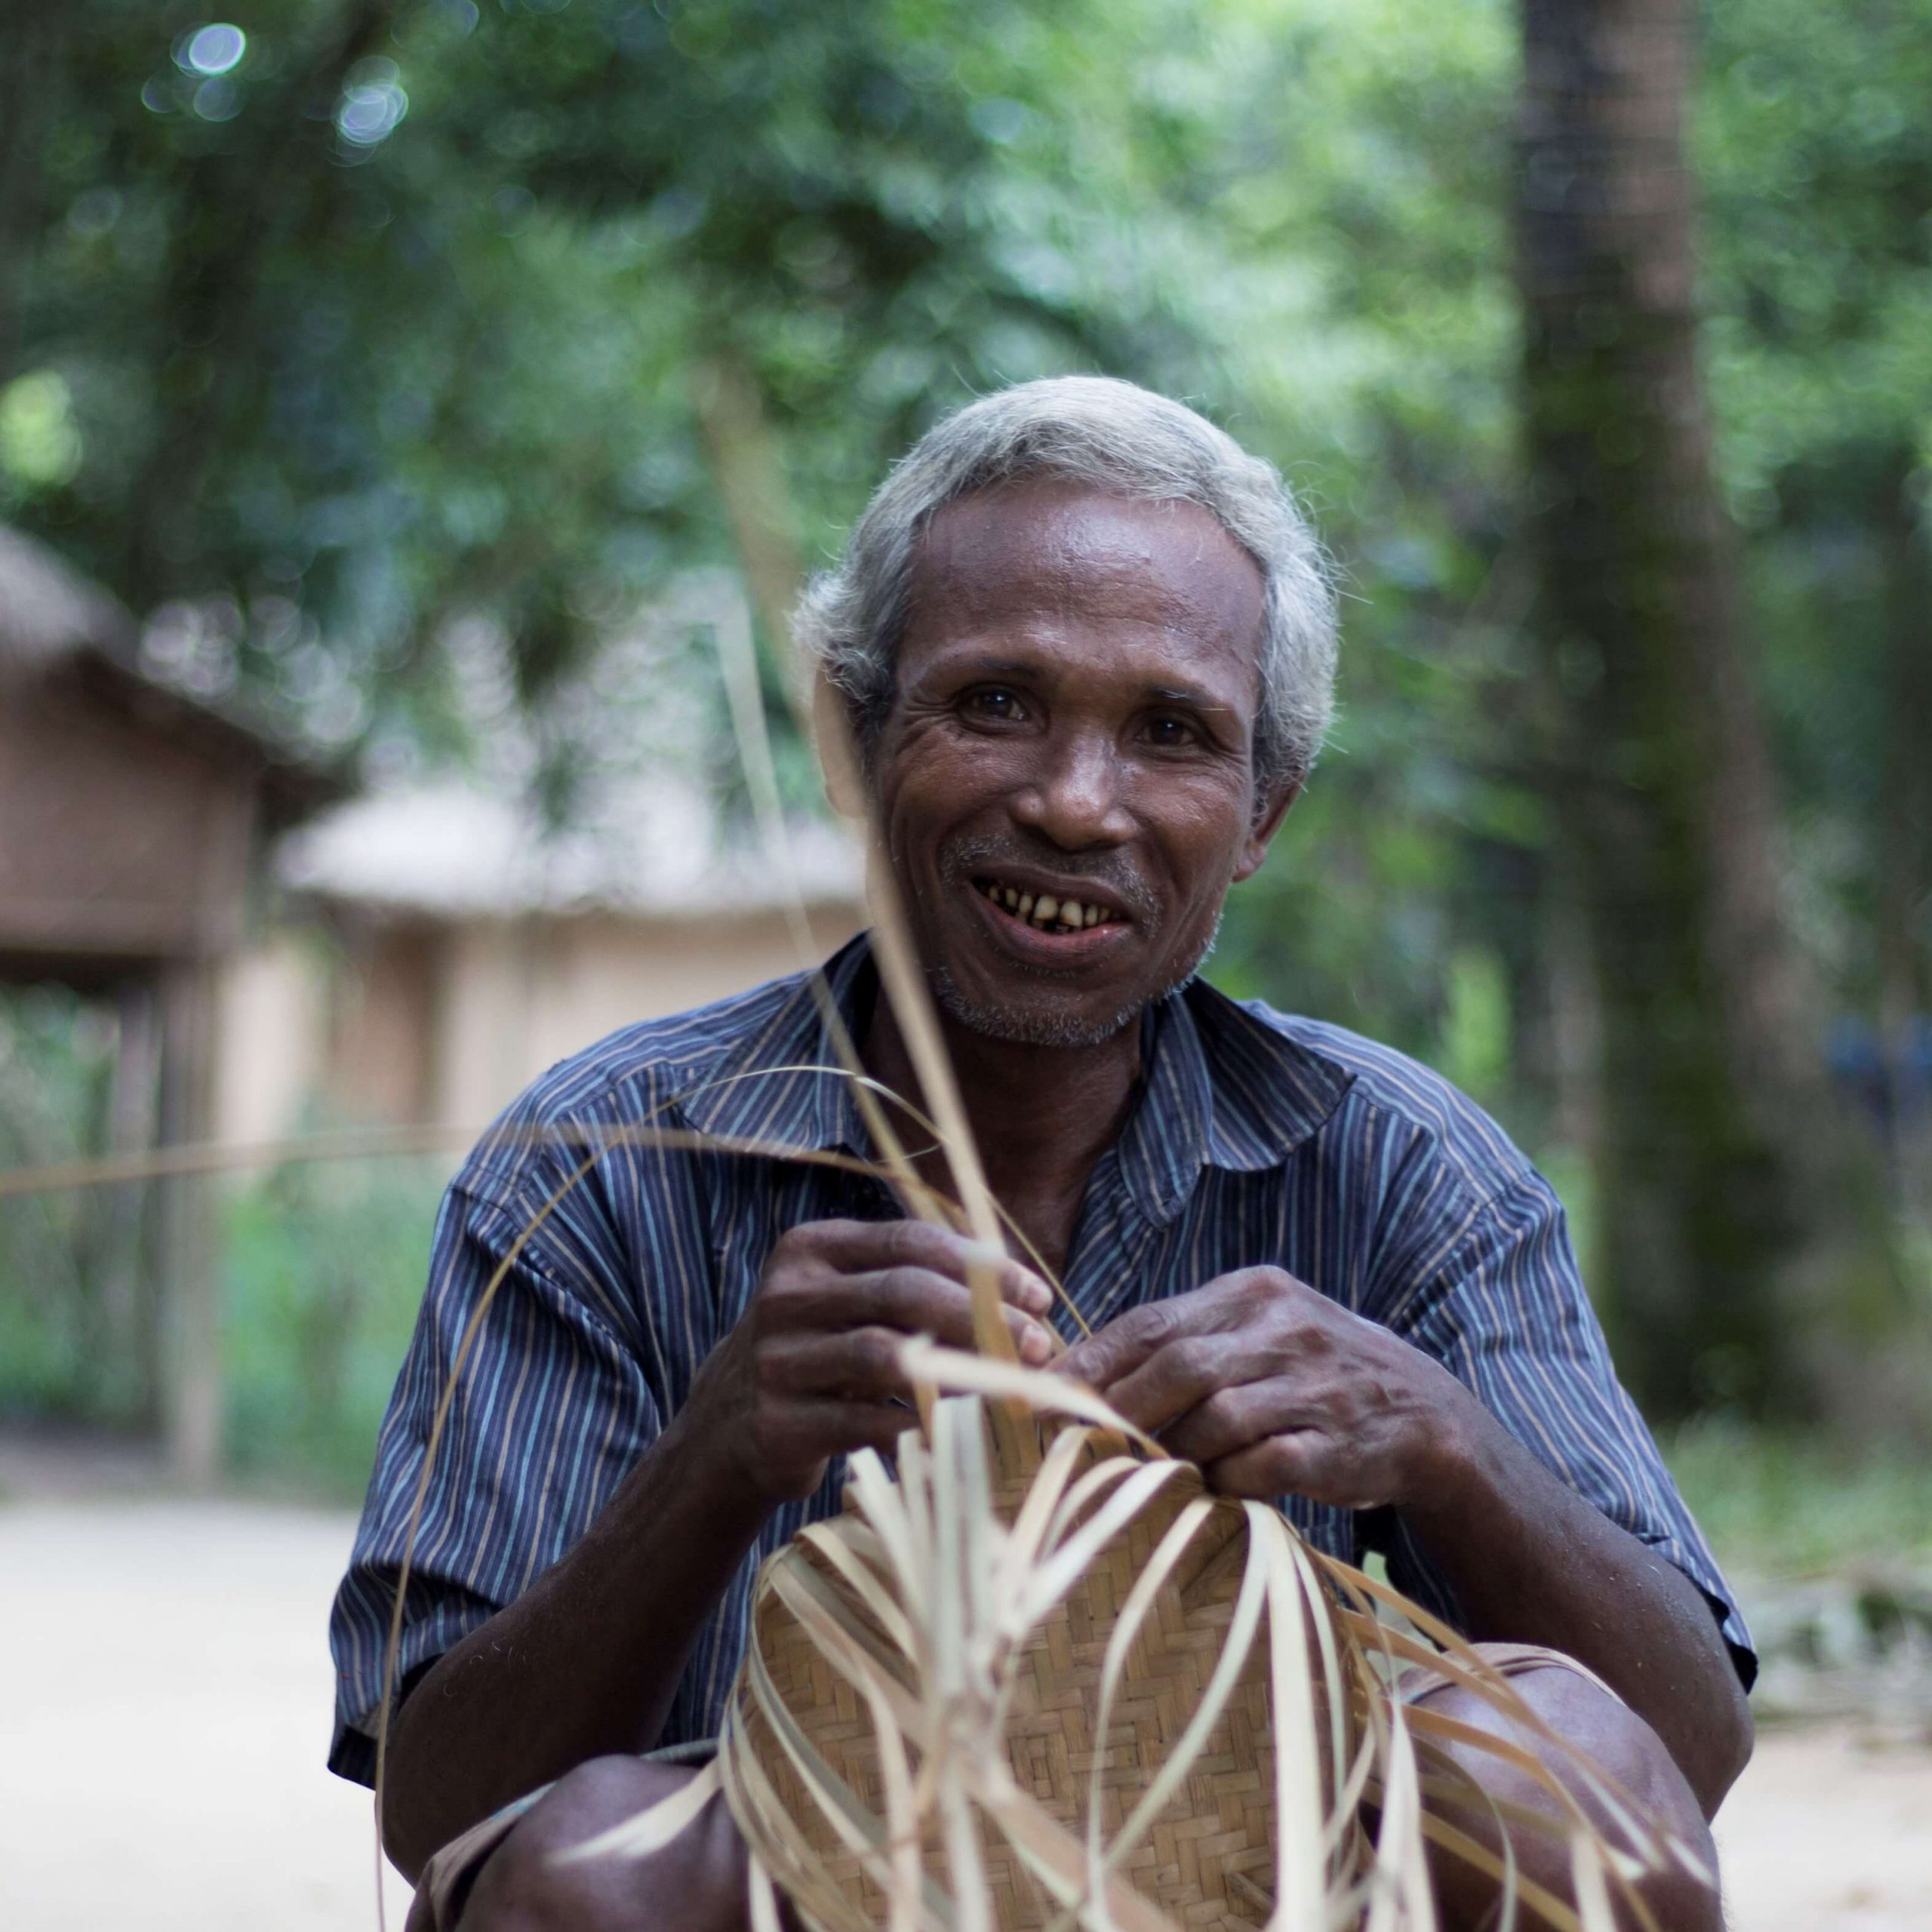 Men are perceived as the head of the family in rural Bangladesh, and thus any development work directed to ensure community empowerment becomes less challenging with the support of adult men. To date, more than 30,000 male members from poor and extreme poor communities have been reached through SHOUHARDO III interventions.